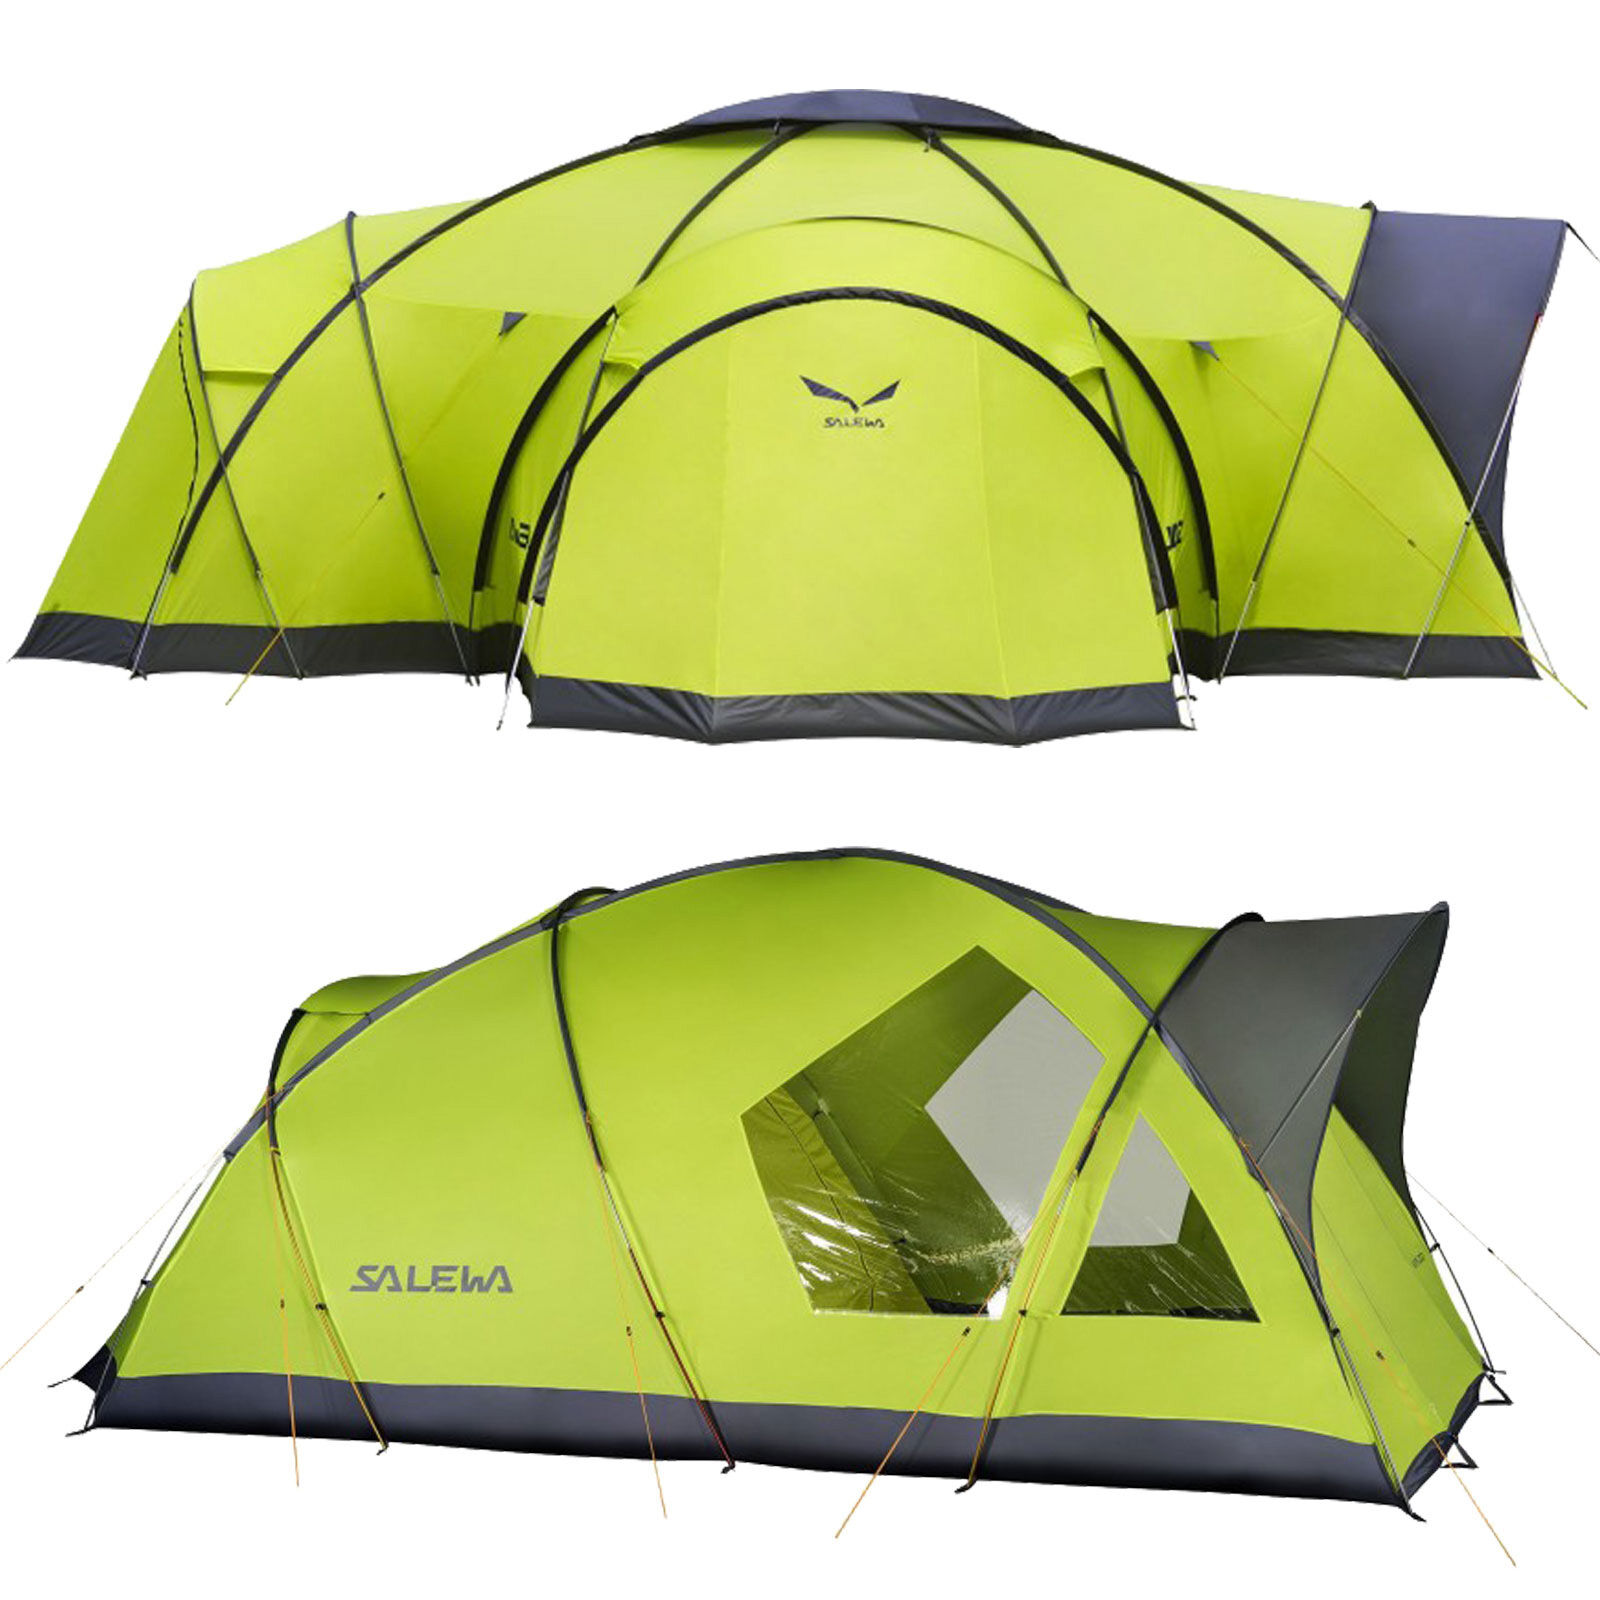 Salewa Alpine Lodge Group Tent Family Tent Tent Large Tent 4-5 Person